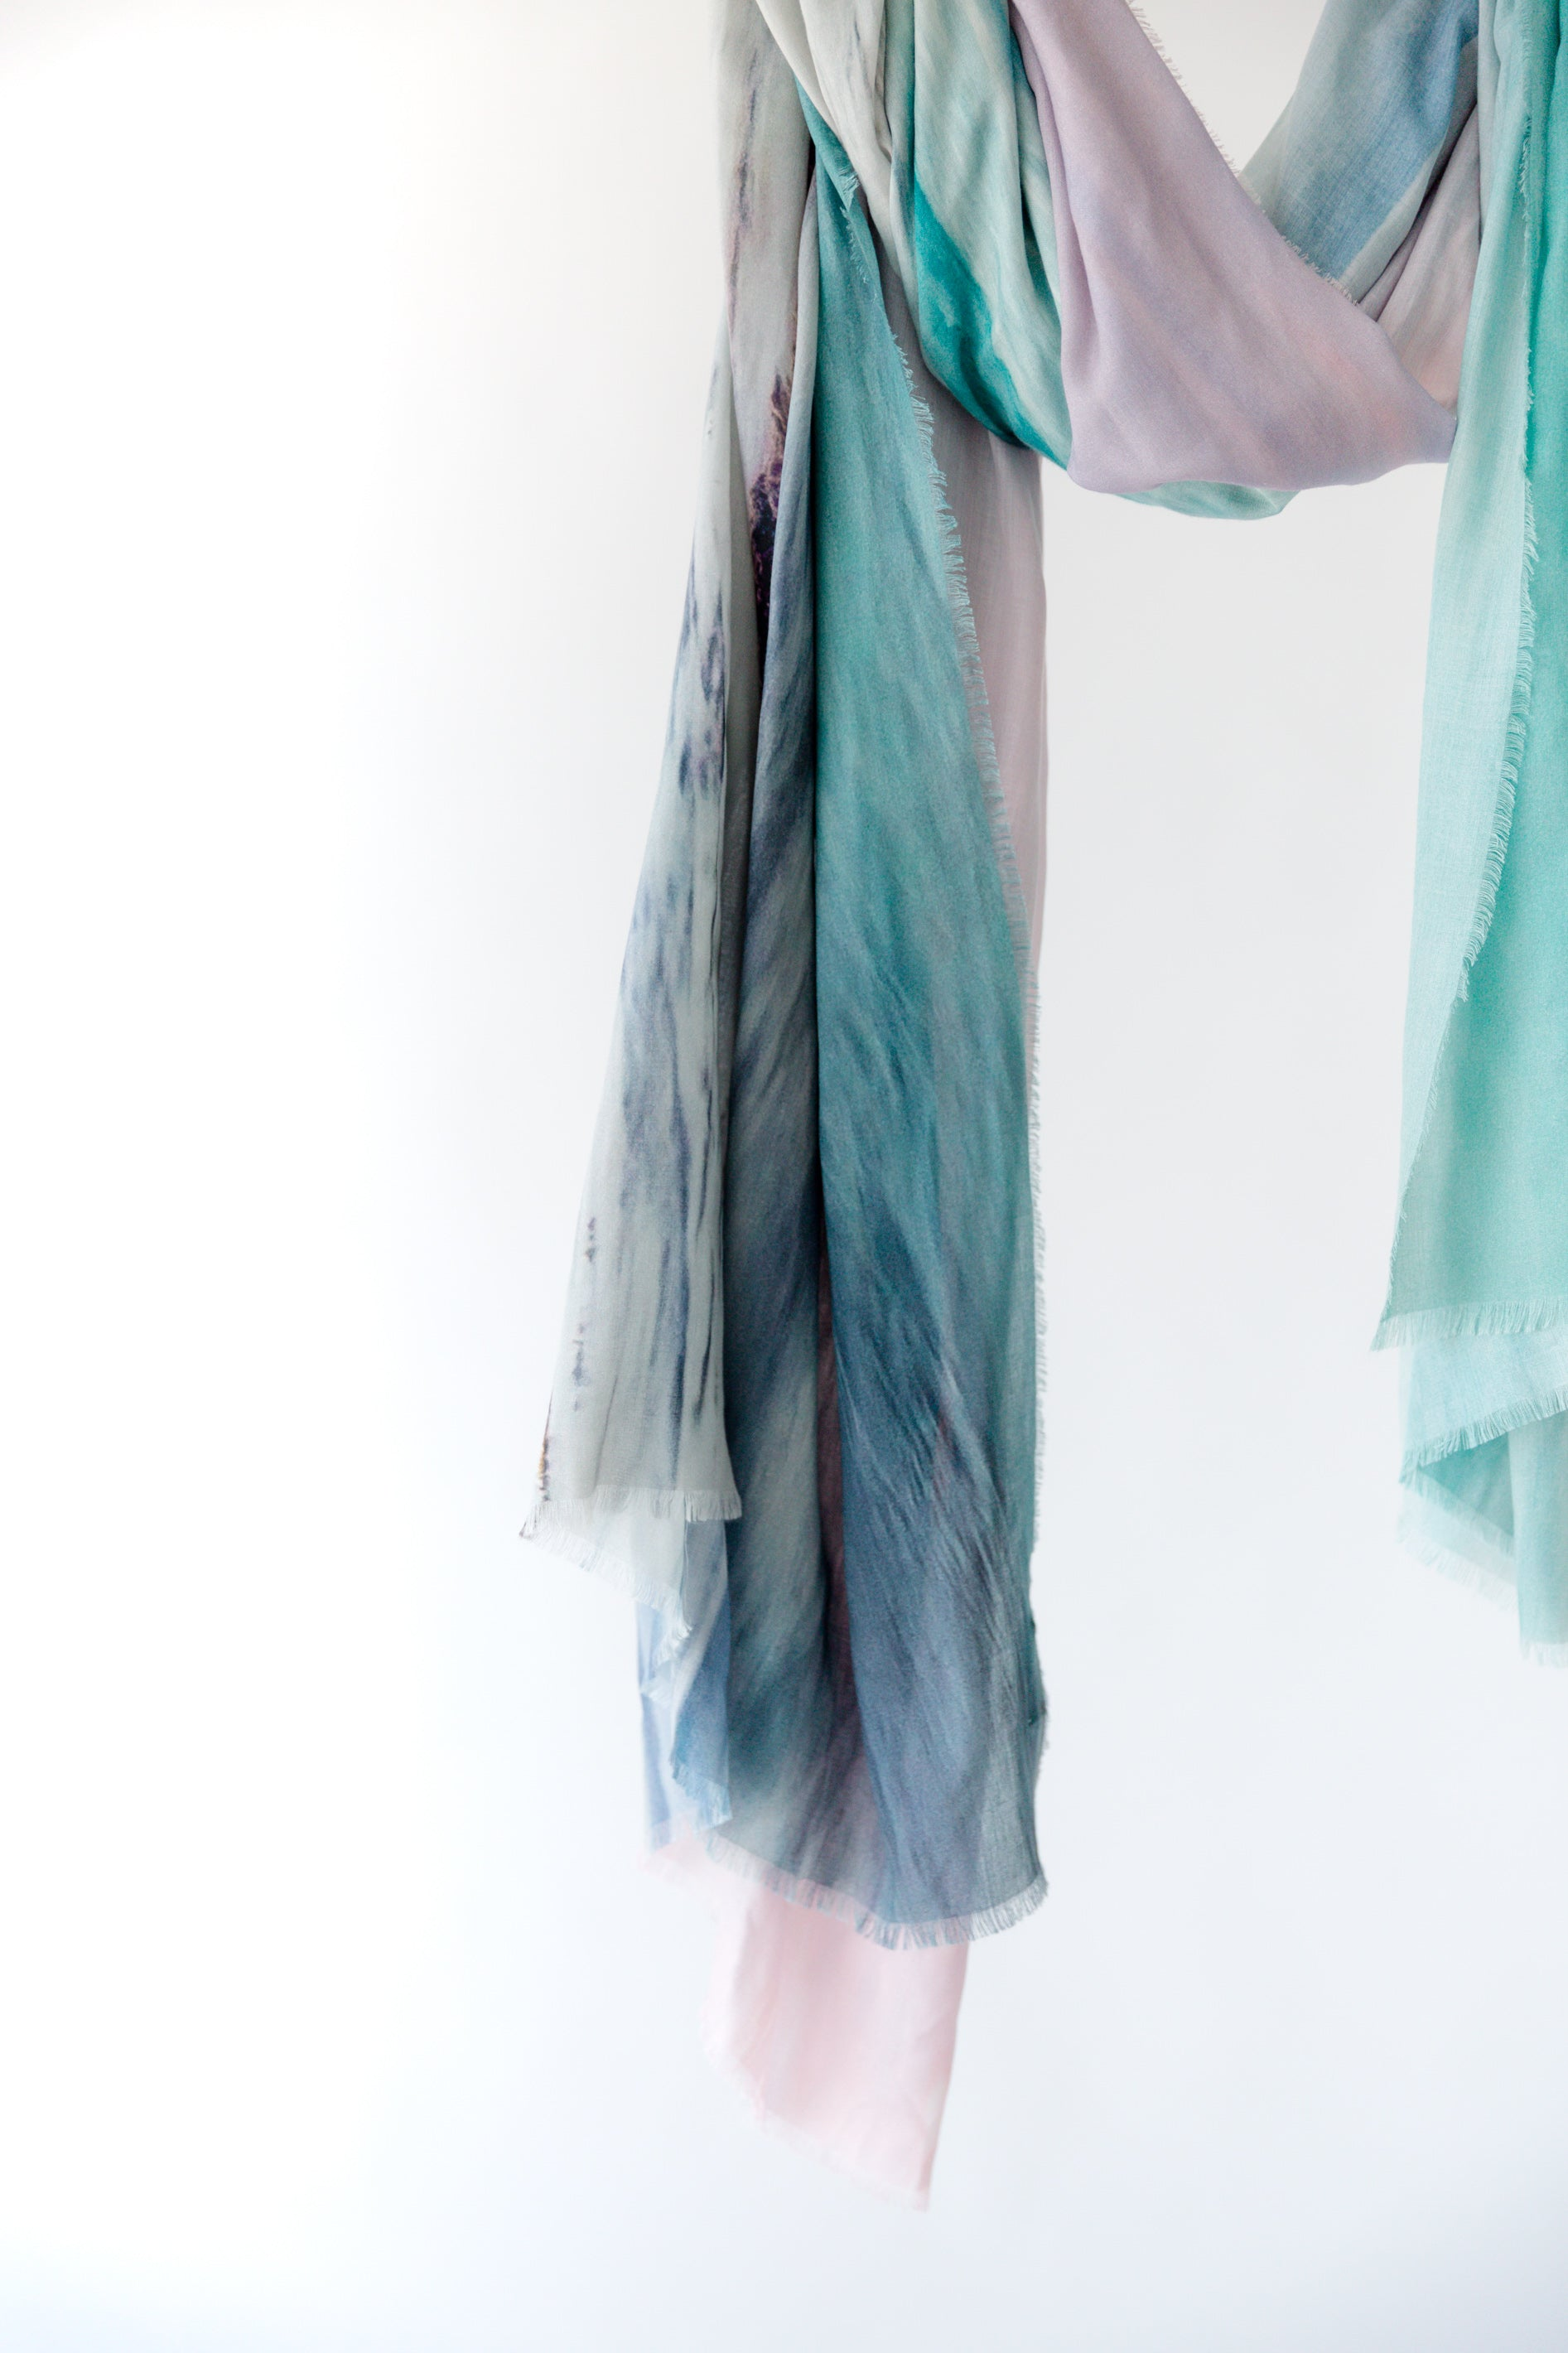 Just Dive In Scarf // SOLD OUT